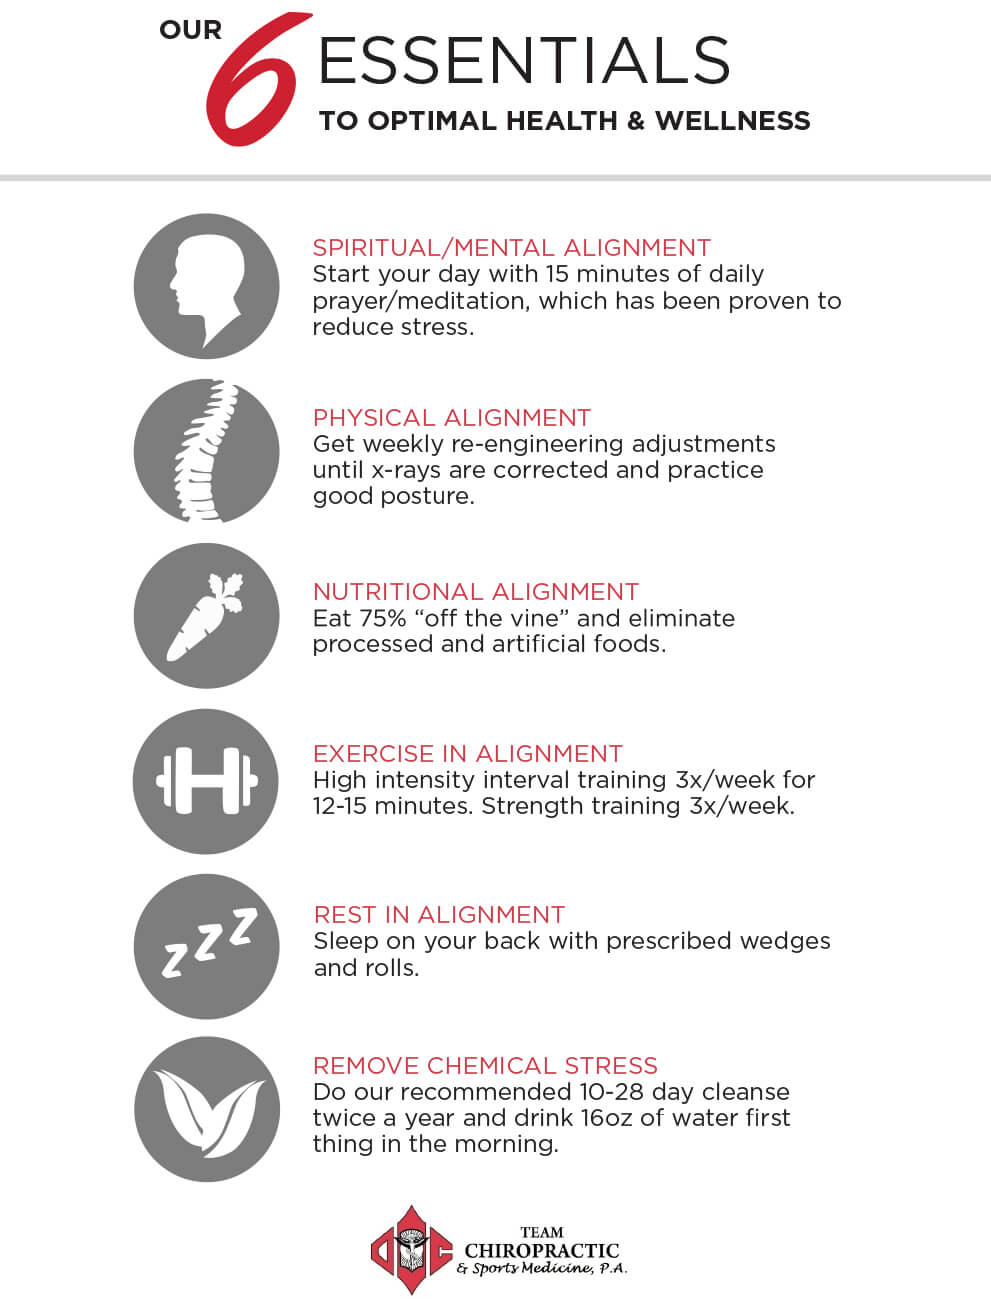 6 Essentials to Optimal Health and Wellness